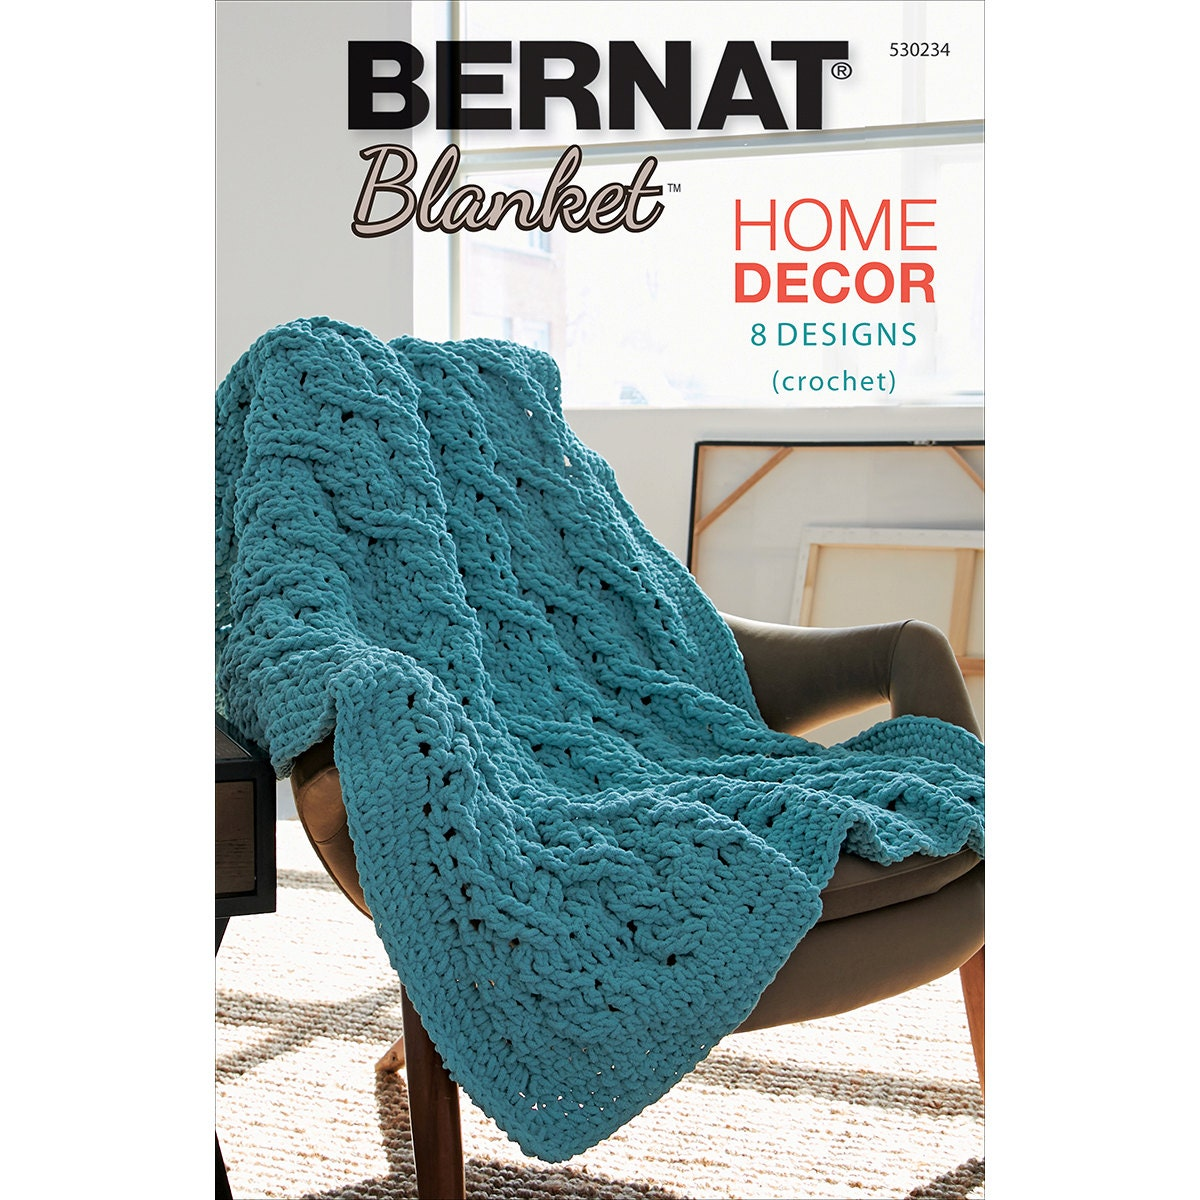 bernat blanket yarn home decor book 8 crochet patterns using